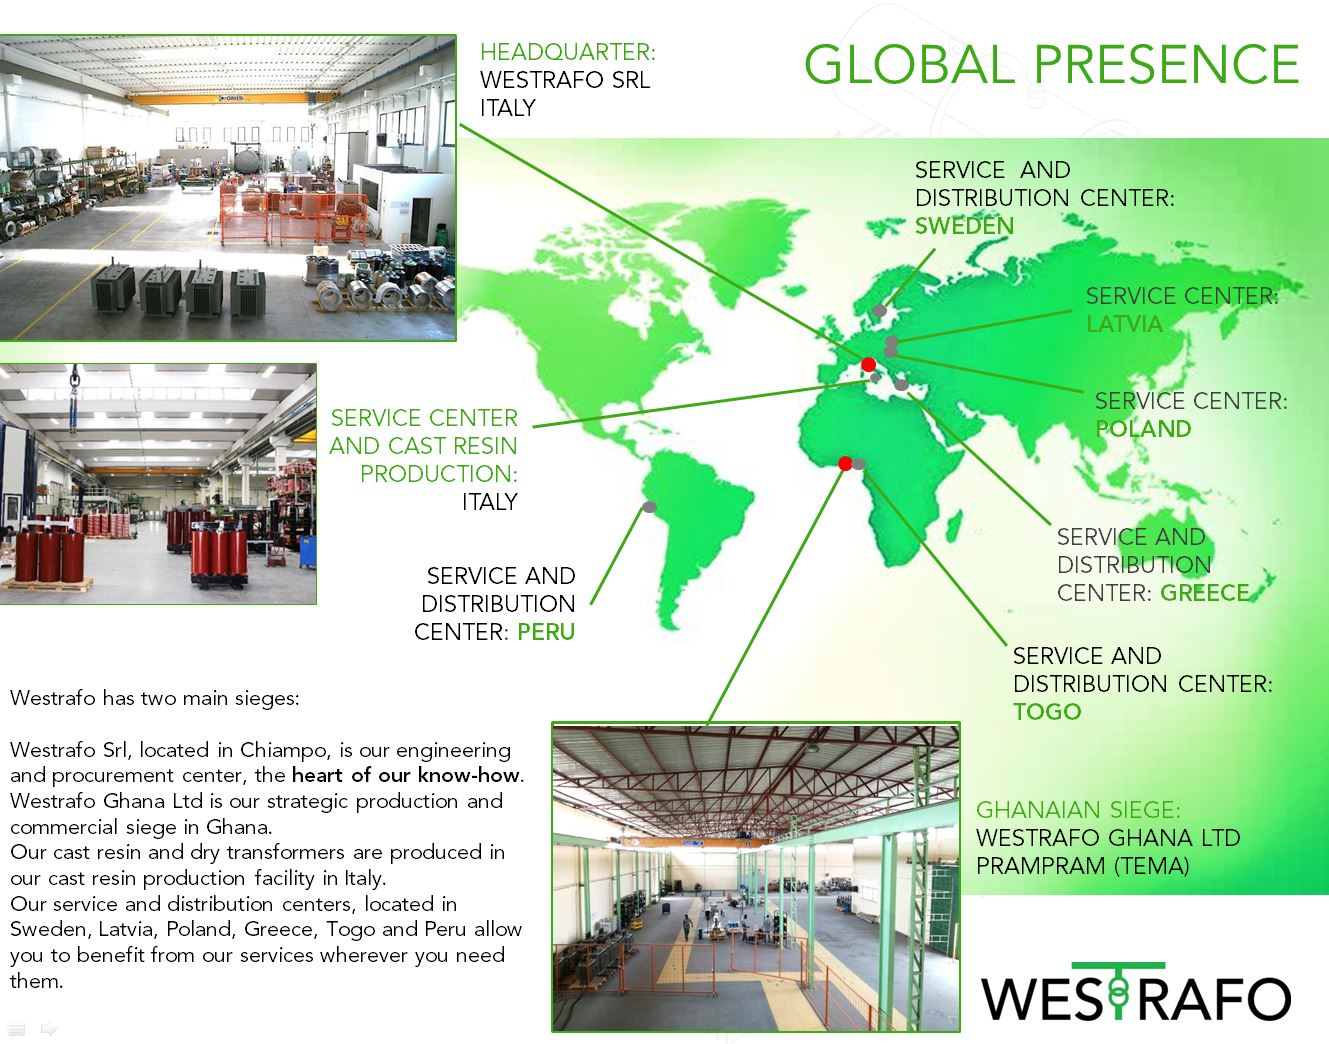 westrafo global presence service centers